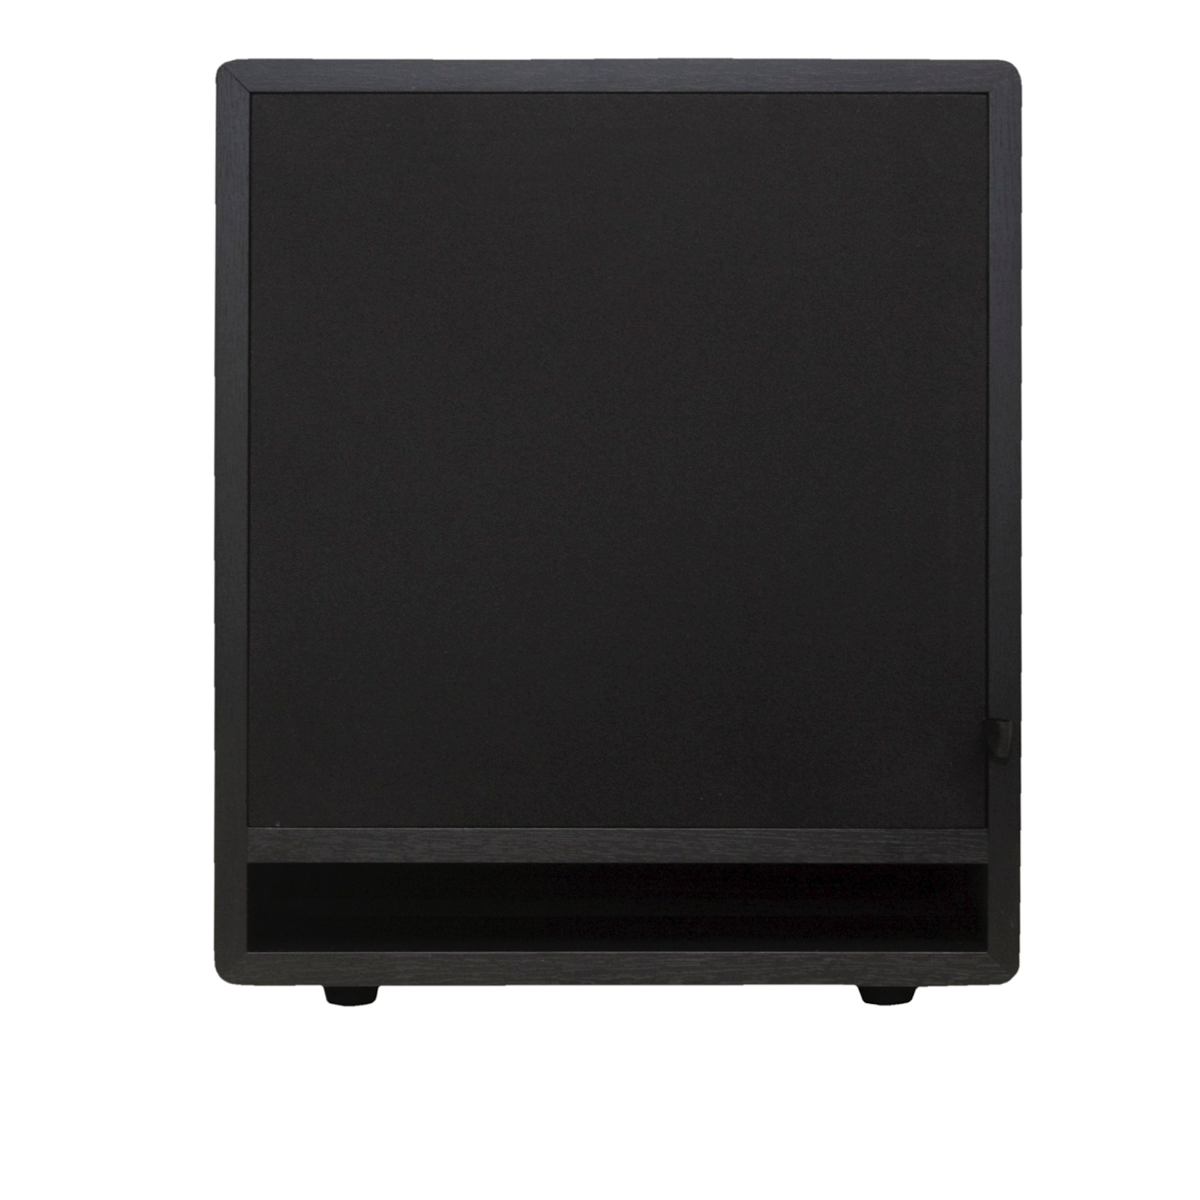 Earthquake FF12 - Subwoofer, Earthquake Sound Corp., Subwoofer - AVStore.in